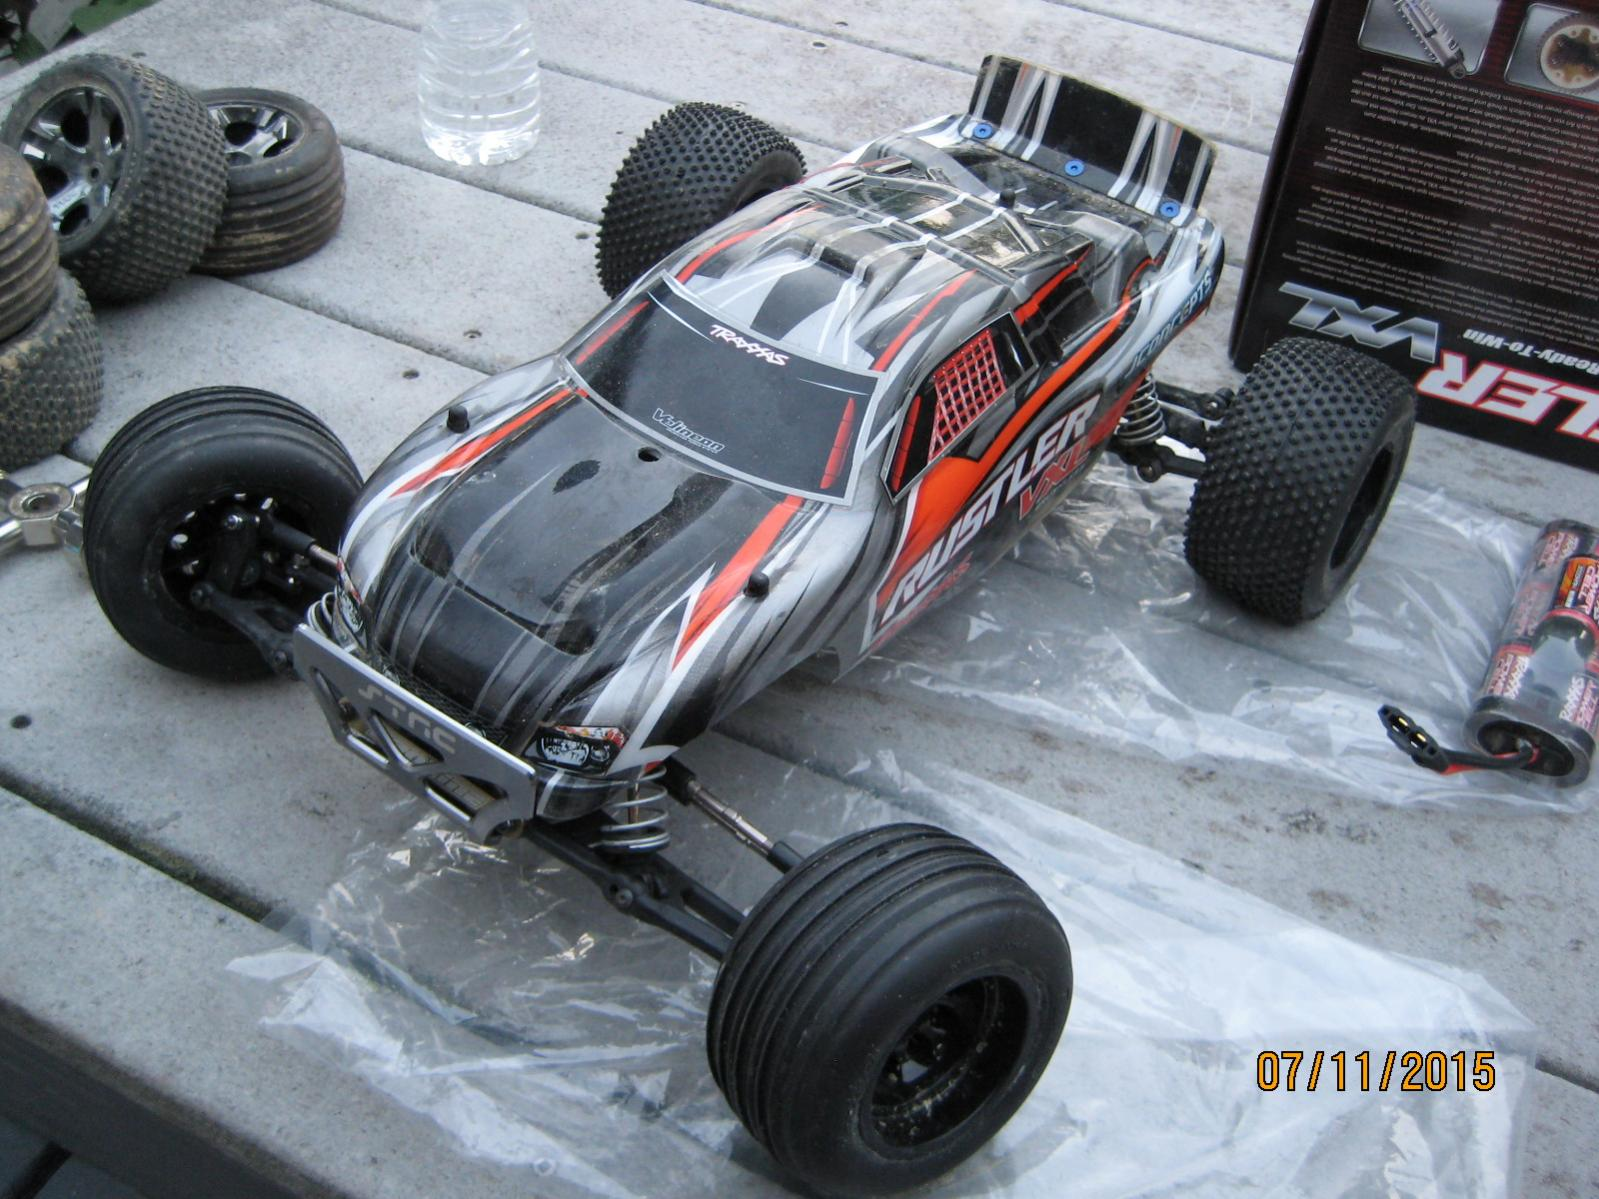 Traxxas Rustler Vxl Rtr With A Bunch Of Extras R C Tech Forums Rc Sale 050